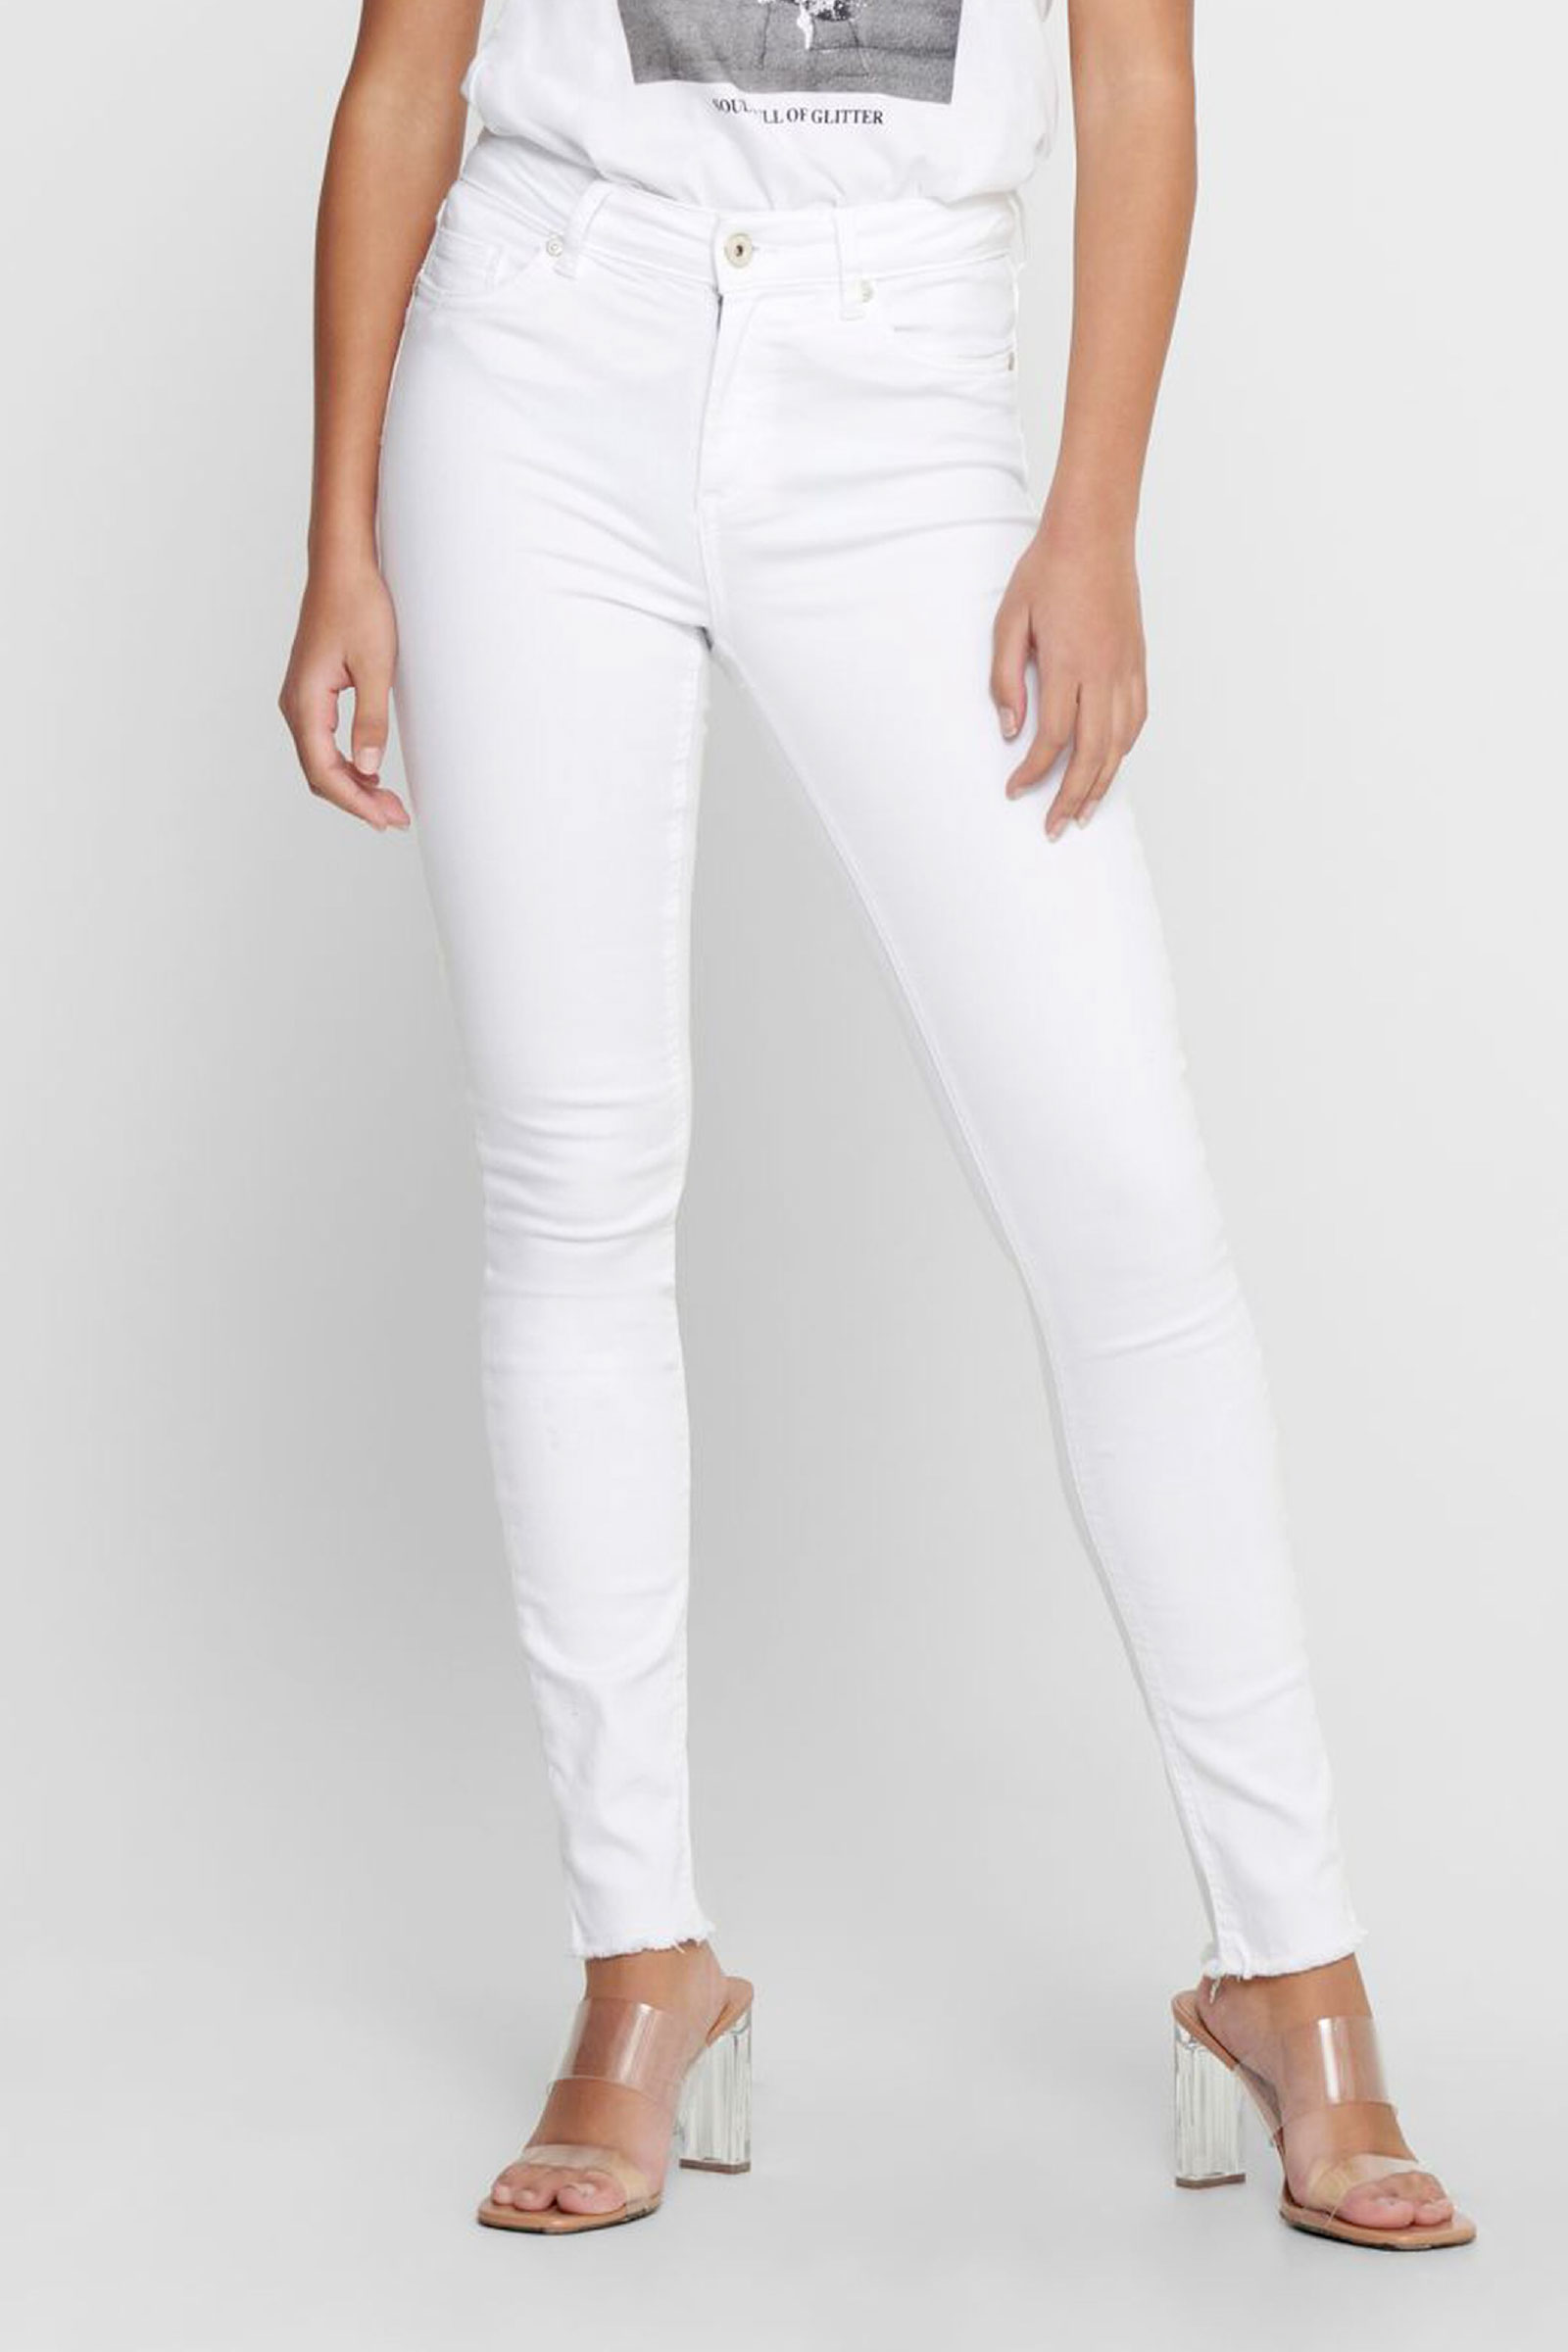 ONLY JEANS Donna Modello BLUSH ONLY | Jeans | 15155438White